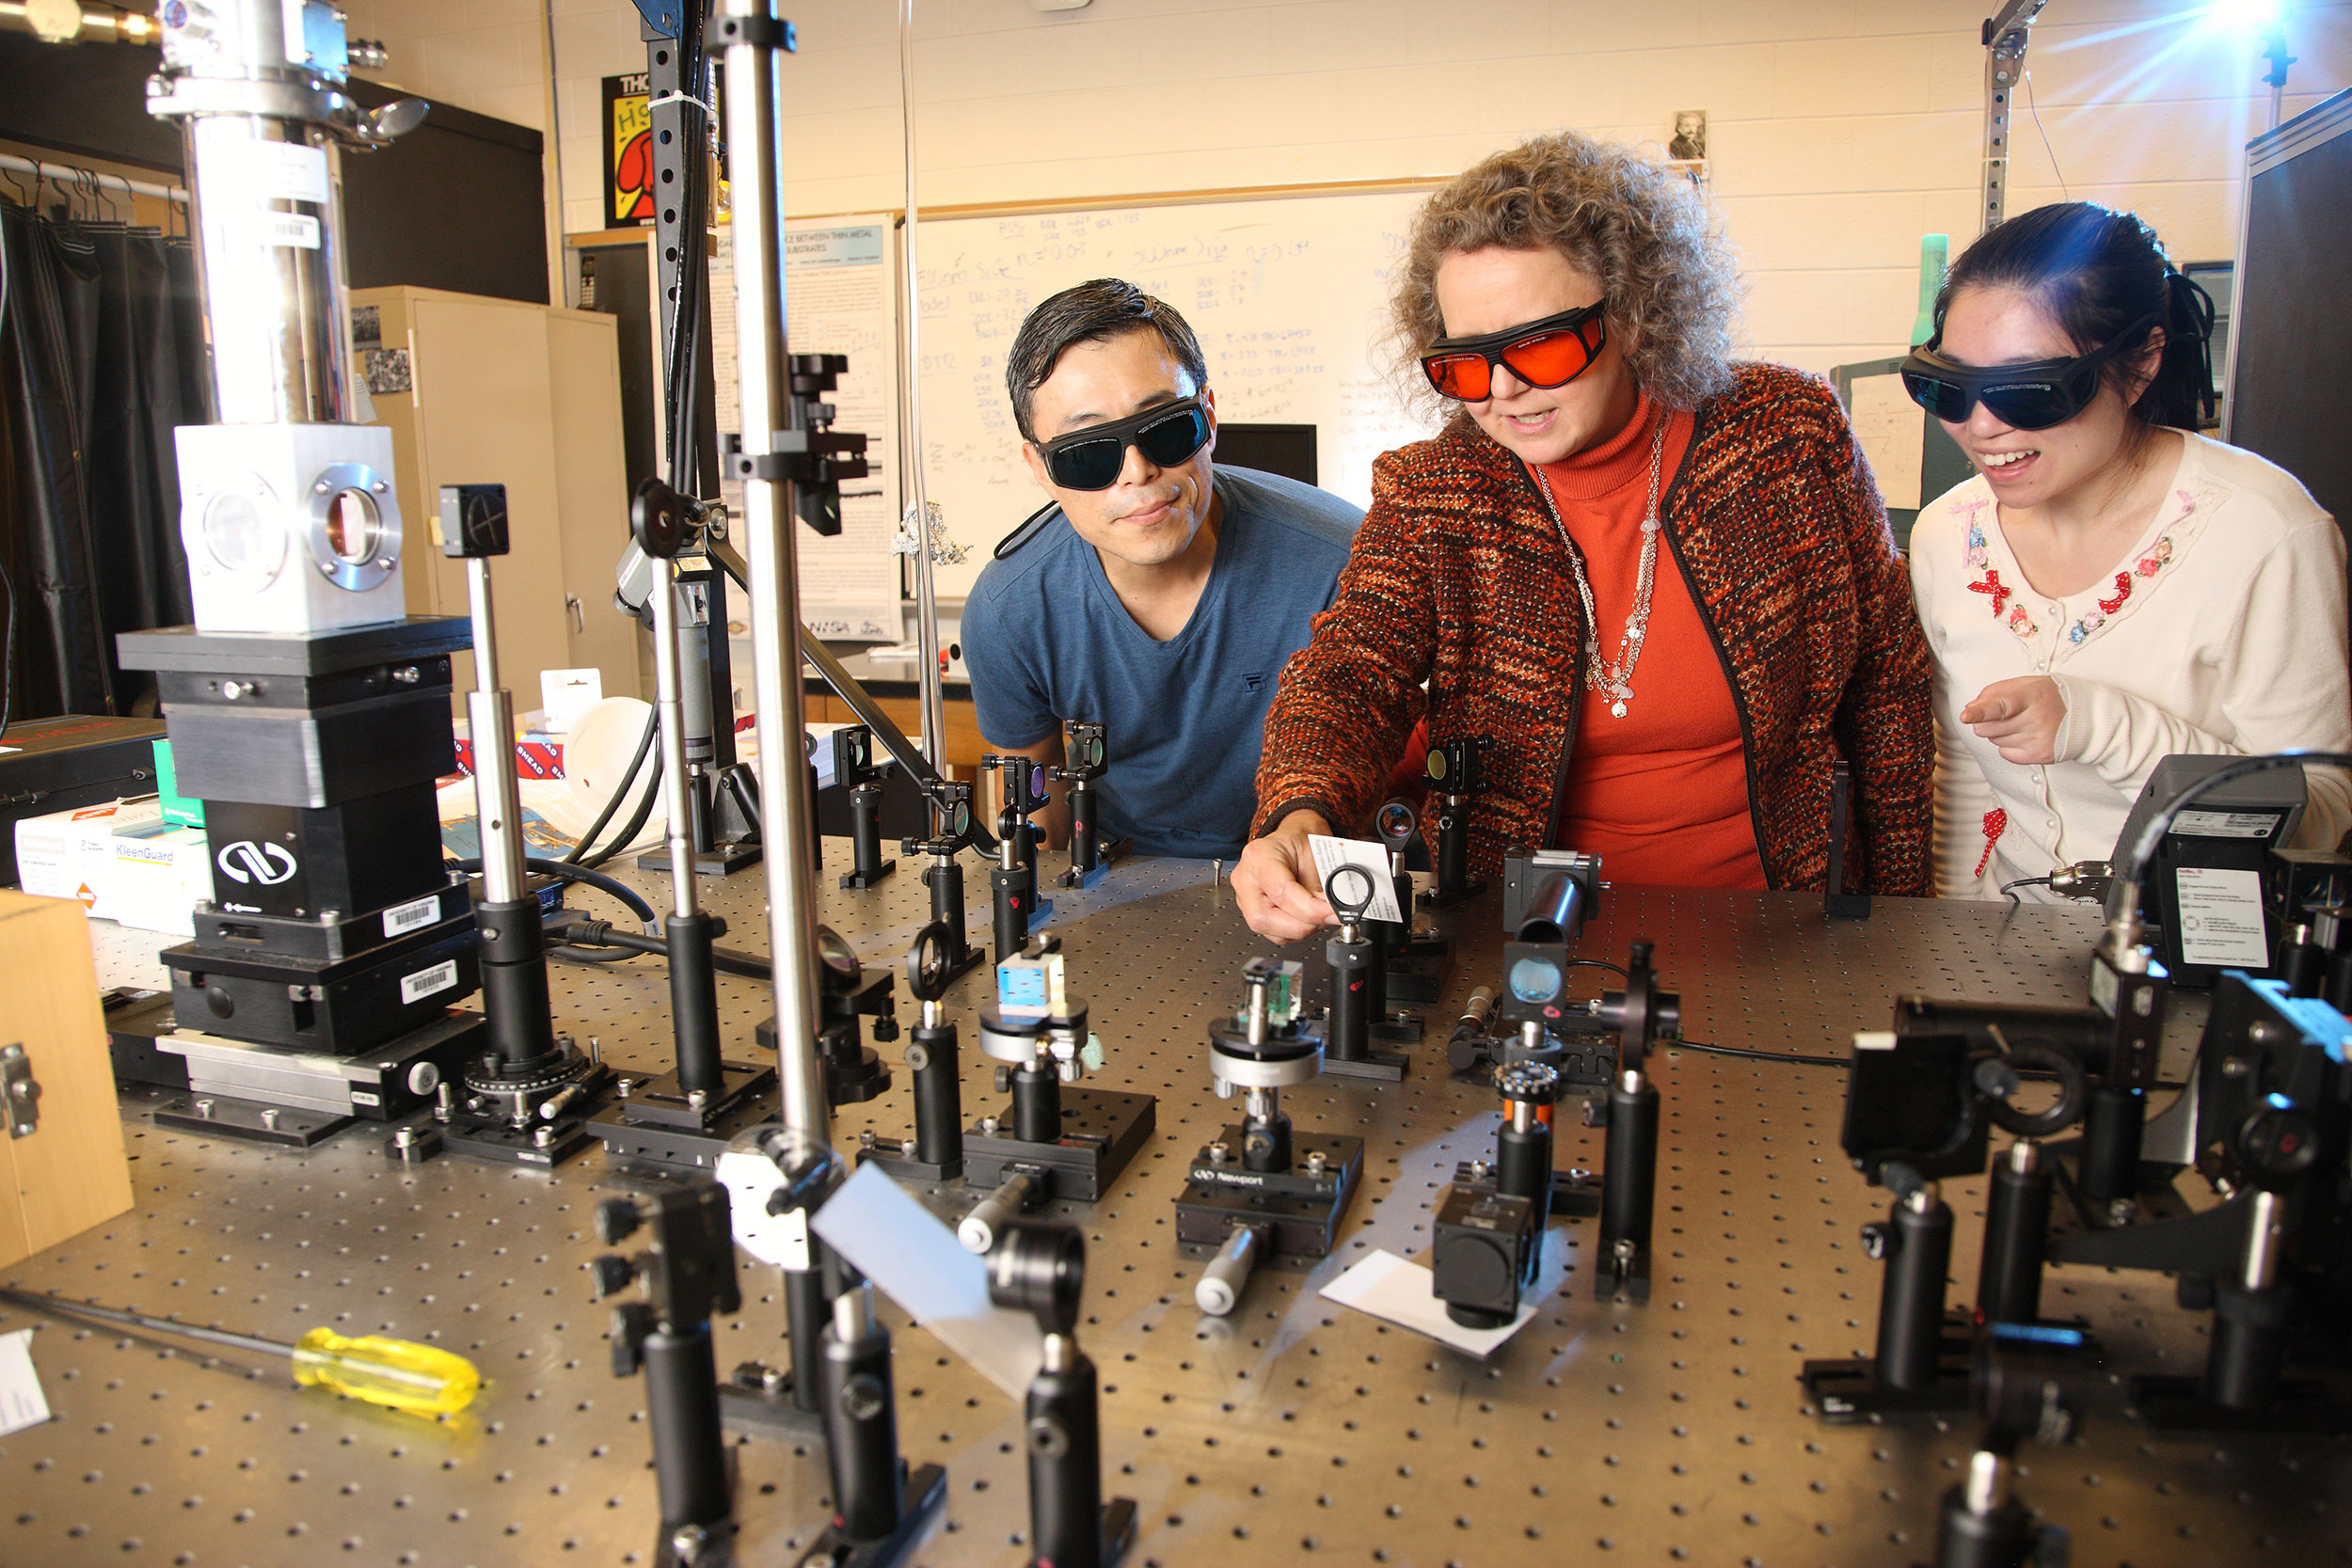 Pam Norris, center, in the lab with Ph.D. student Jong Ho Sonn, left, and postdoctoral researcher Lin Qiu.